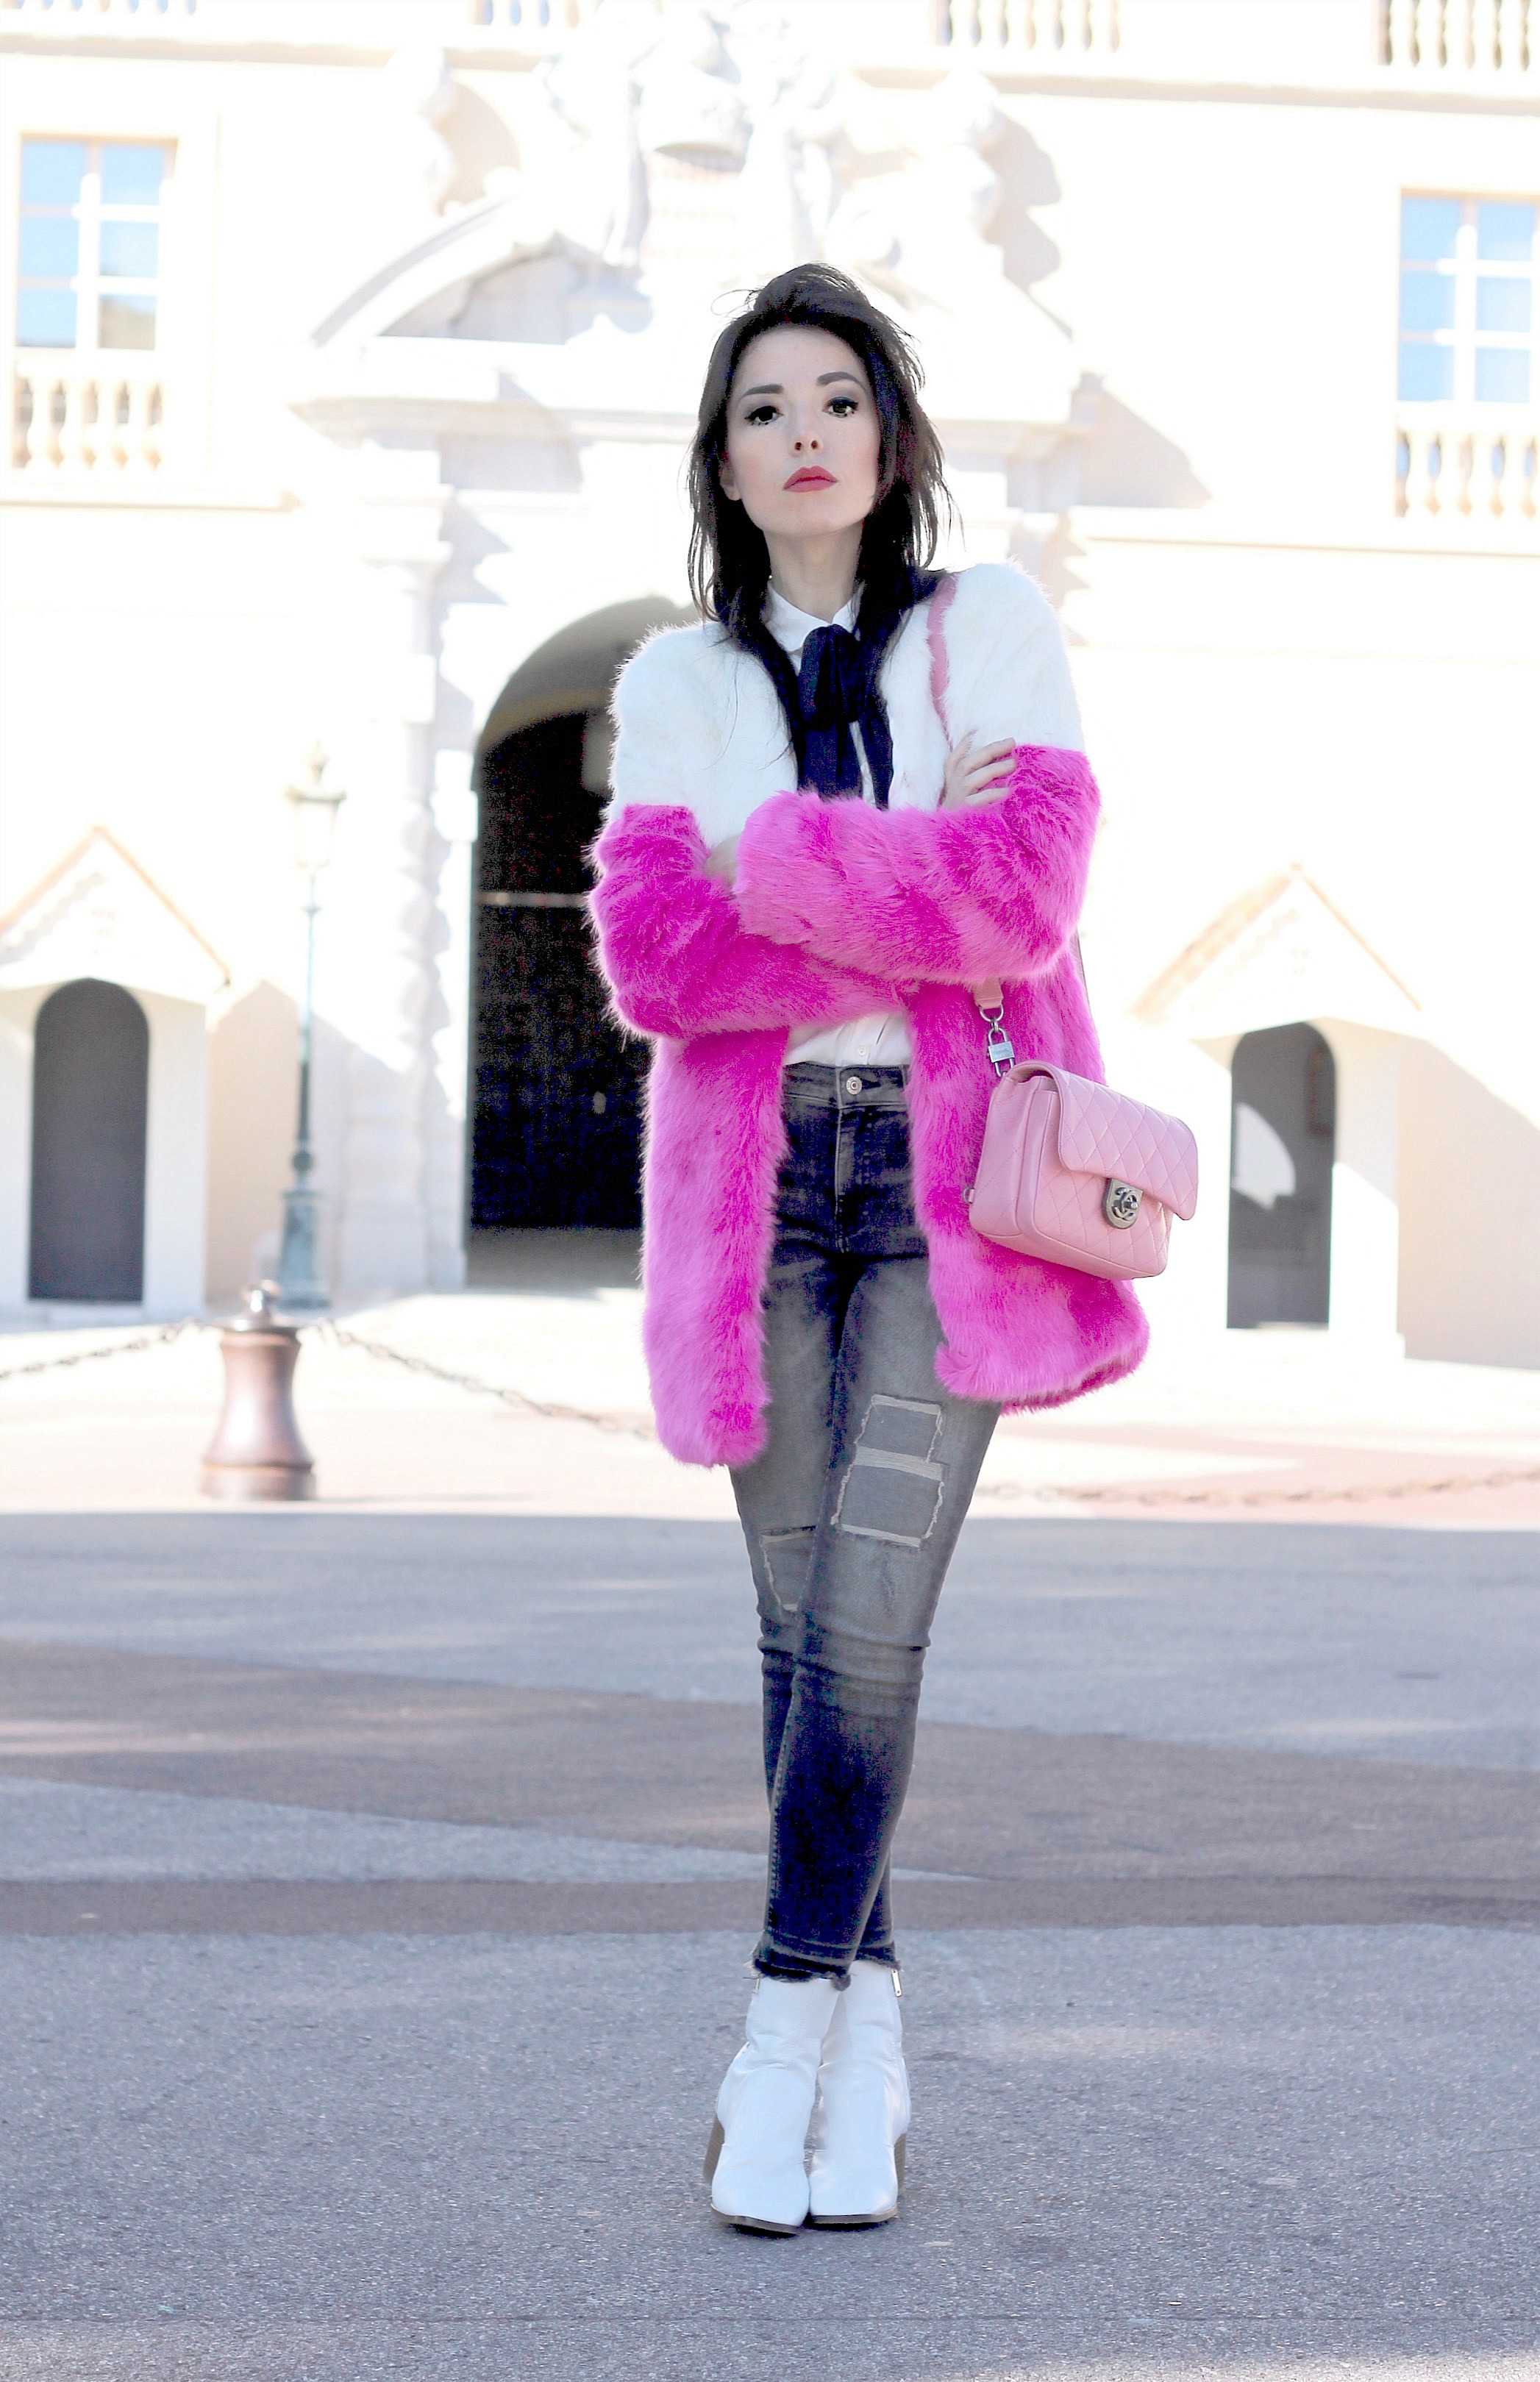 Accrediti sfilate Milano, theladycracy.it, elisa bellino, pink chanel, stivaletti zara ss 2016, chanel bag 2016, jeans mango 2016, pelliccia asos 2016, faux fur asos, fashion blog italia, fashion blogger italiane, fashion blogger outfit, fashion blogger famose italia, camicia con fiocco mango